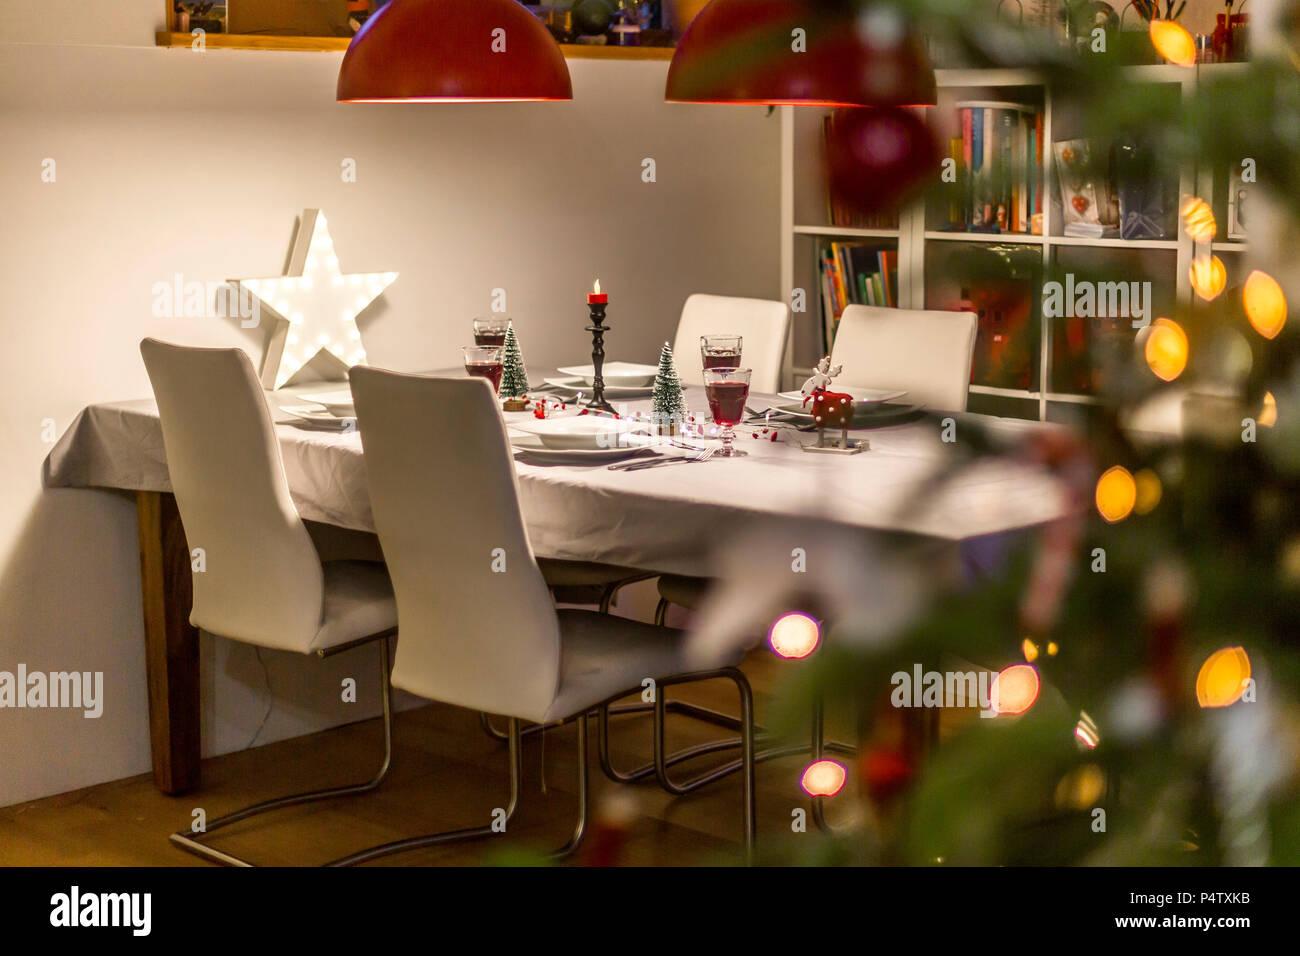 Laid table in dining room at Christmas time - Stock Image